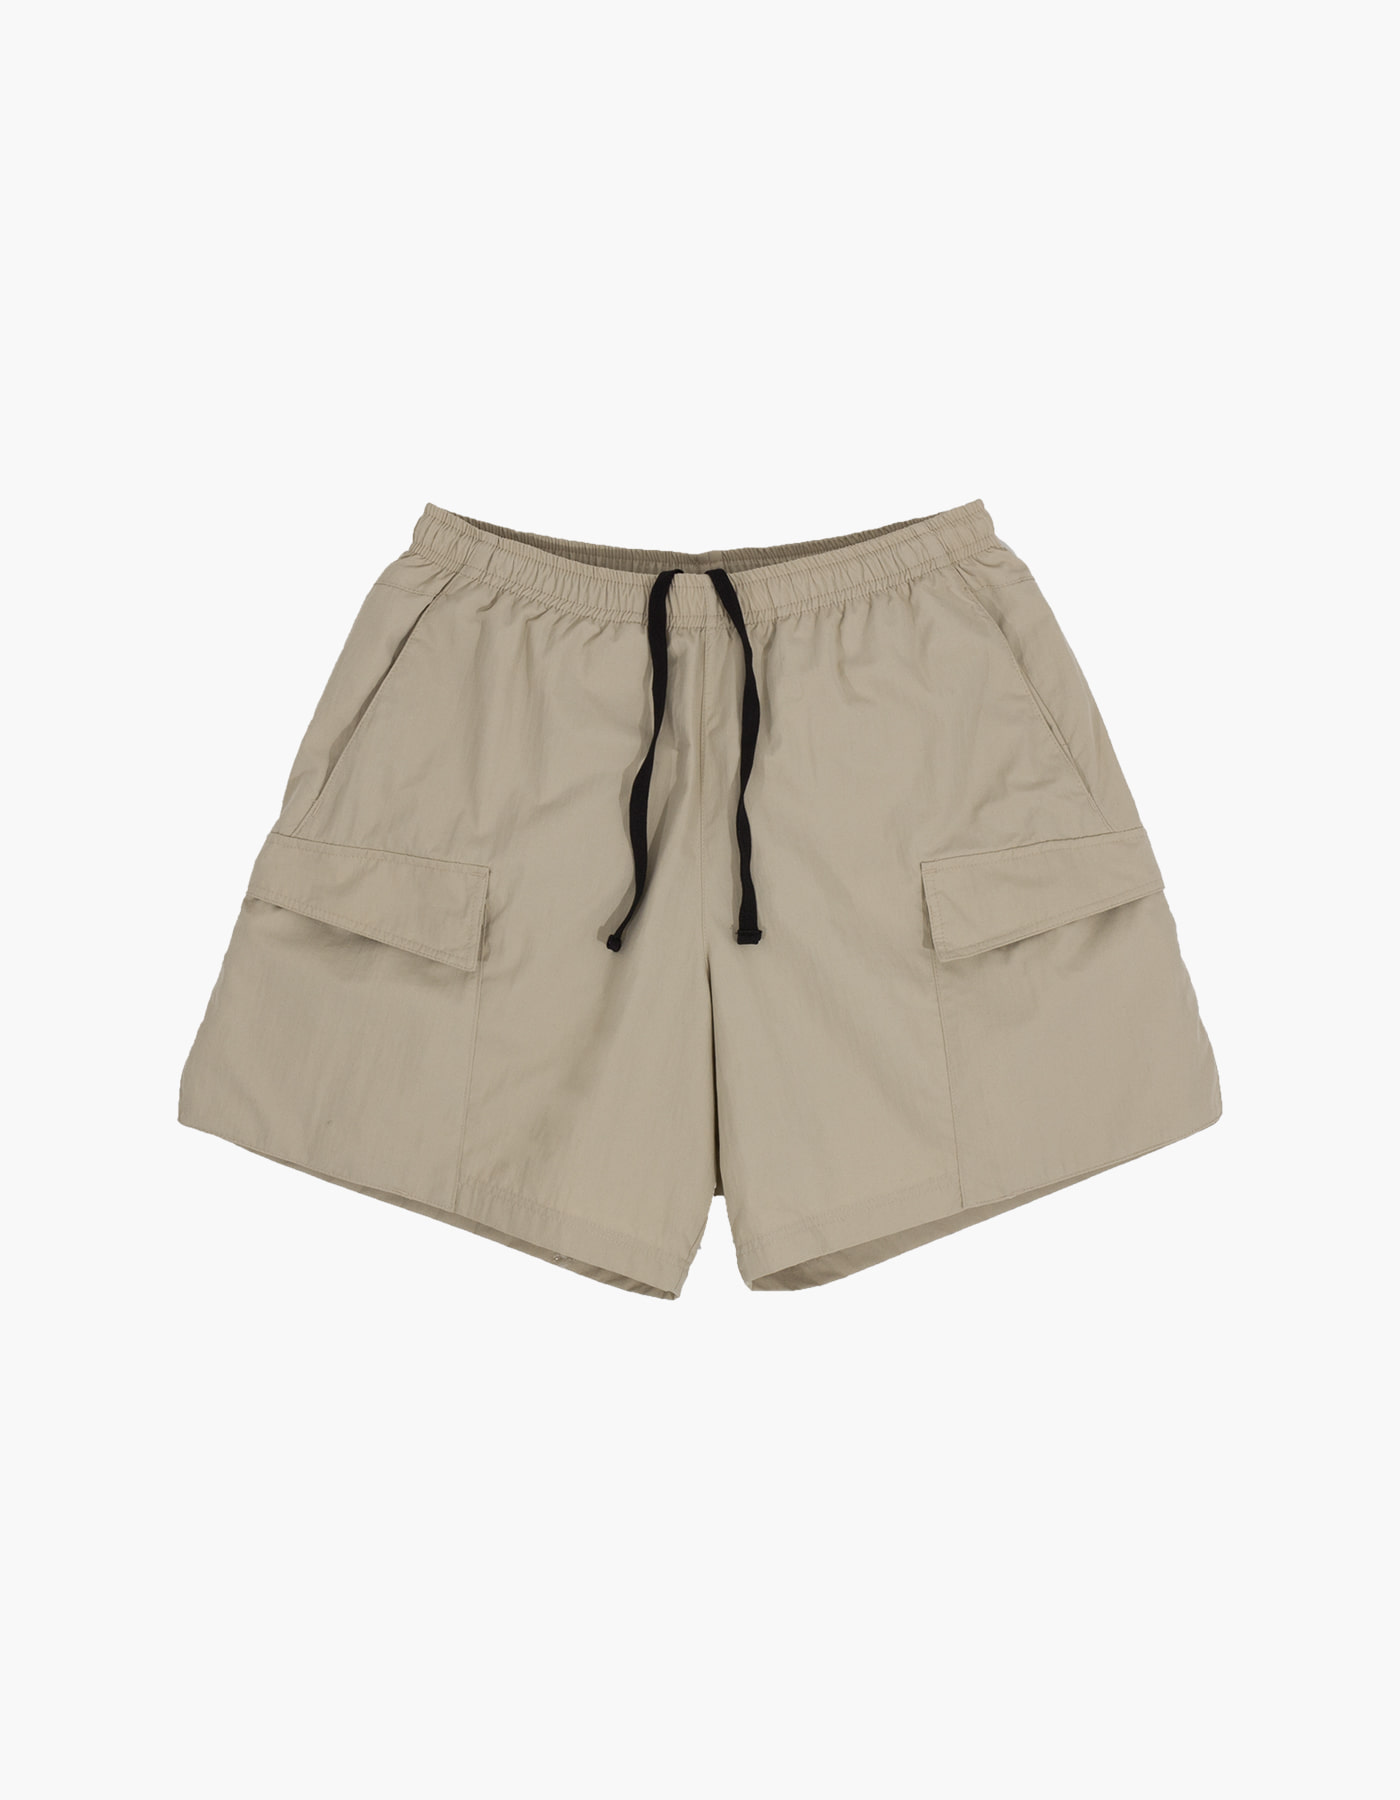 NYLON TAFFETA WASHER SHORTS / BEIGE